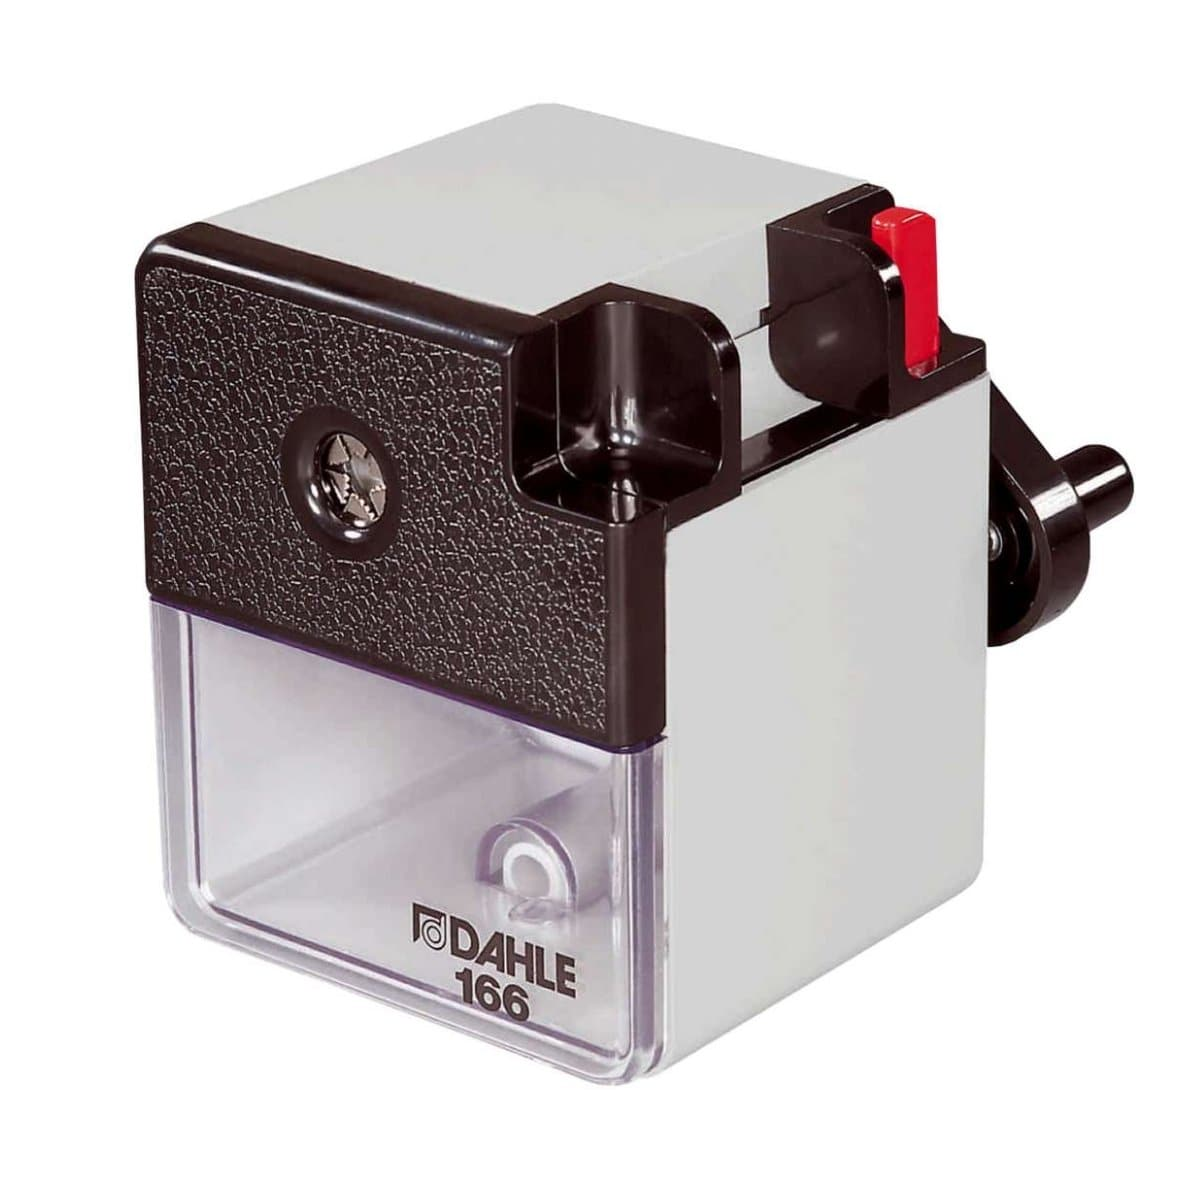 Dahle 166 Premium Pencil Sharpener, Grey